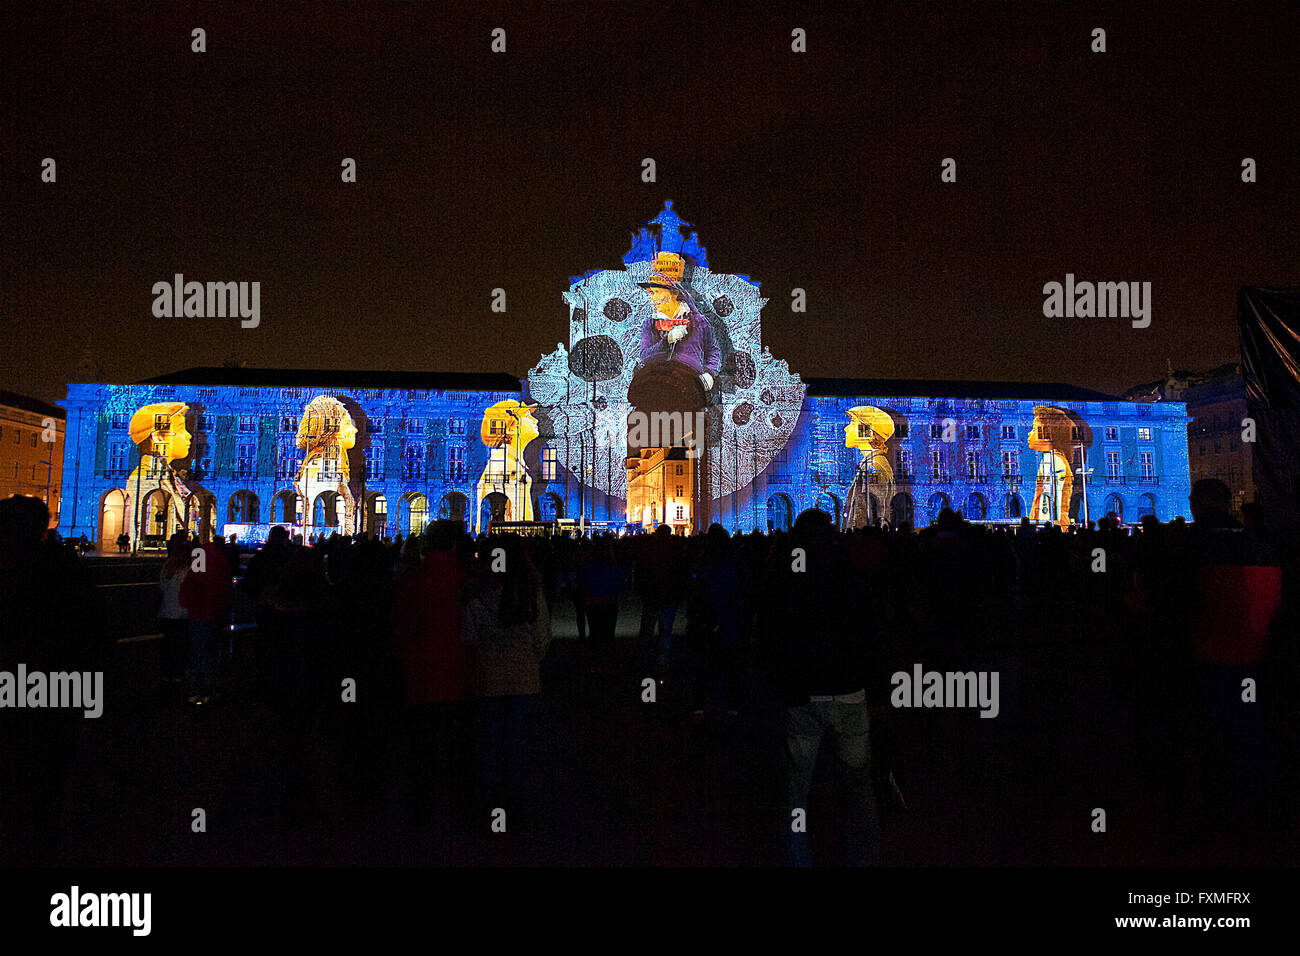 Projection Mapping on Arch of Triumph at Palace Square, Lisbon, Portugal - Stock Image